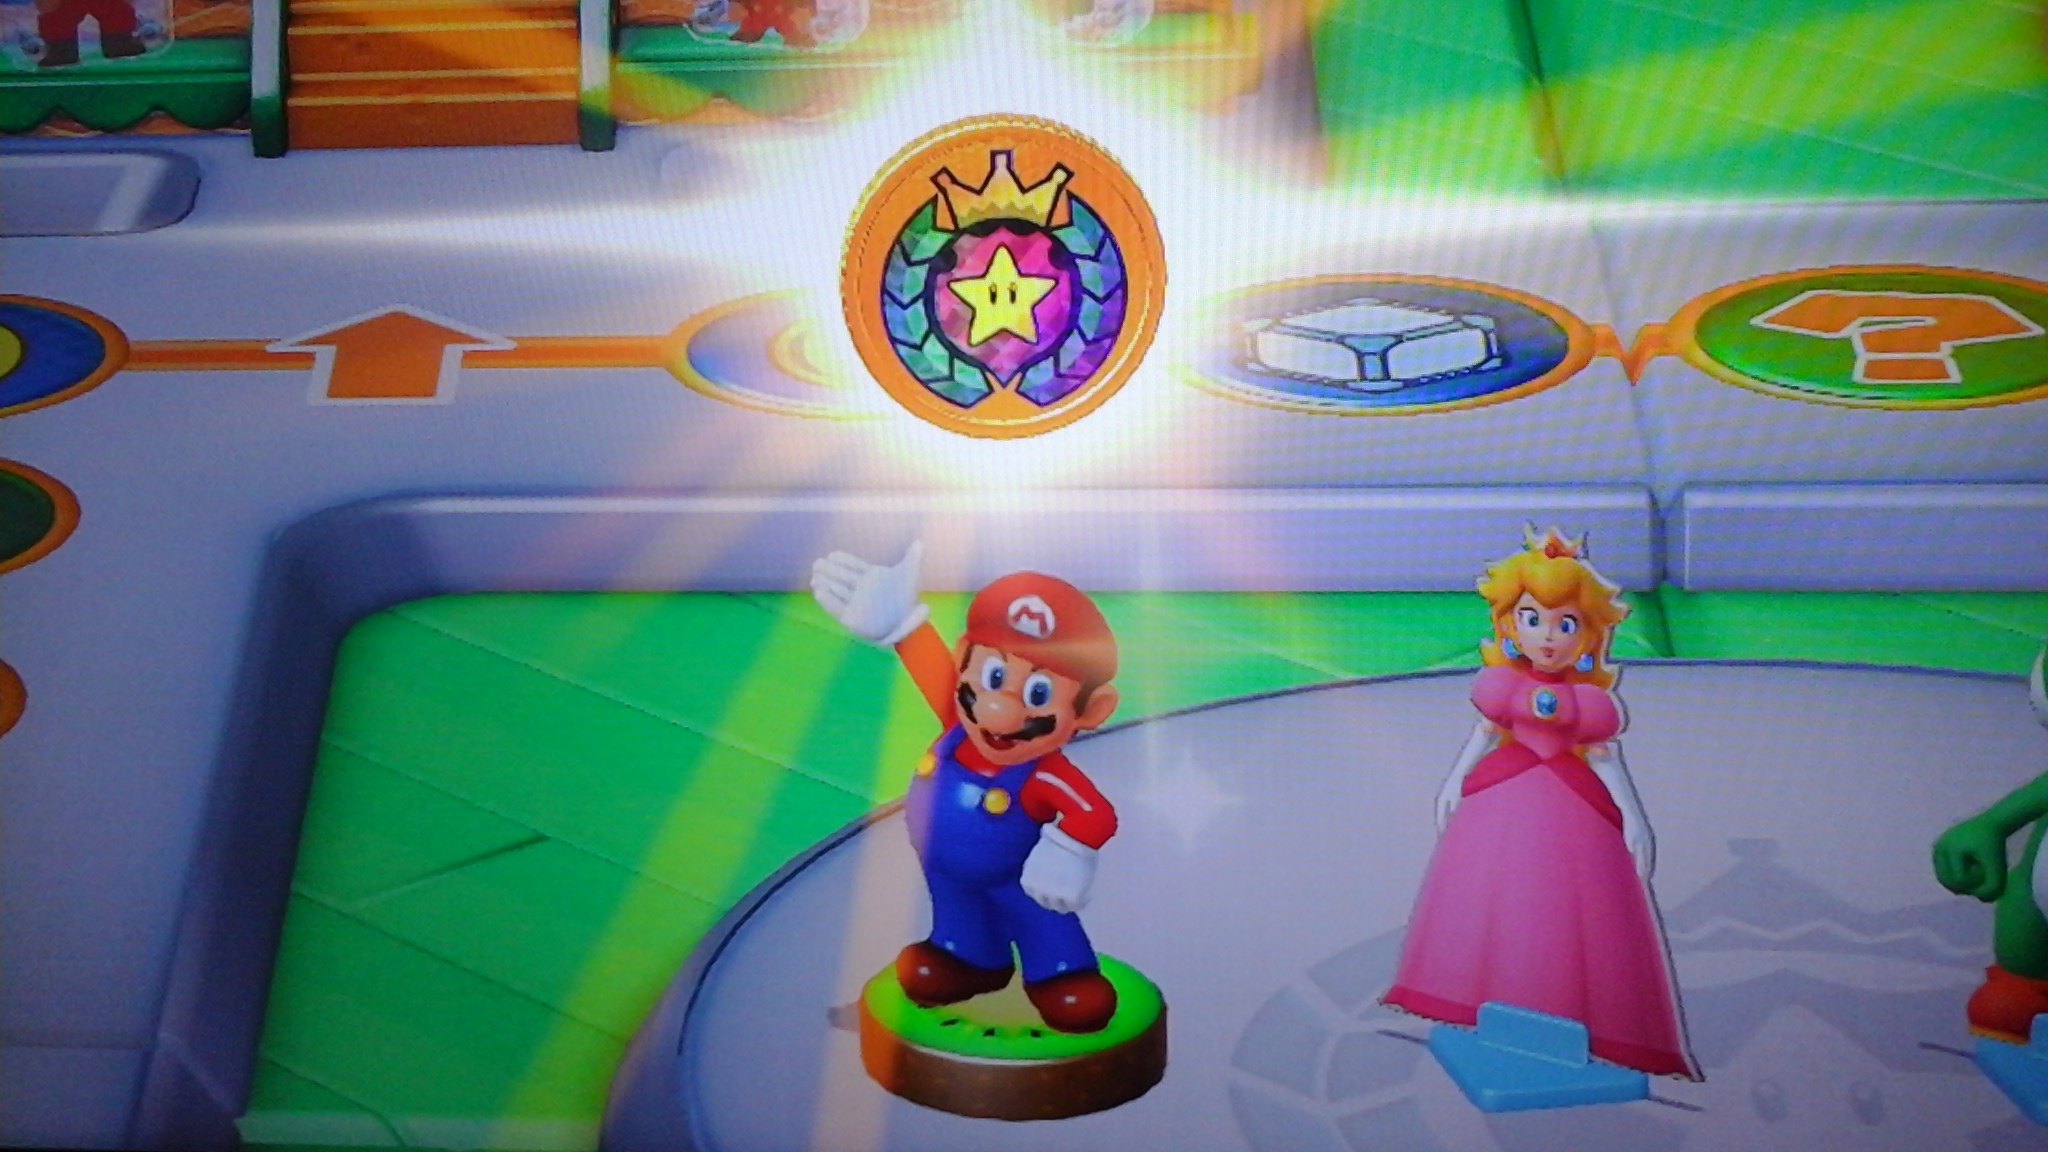 There is a special perk for using the gold Mario amiibo in Mario